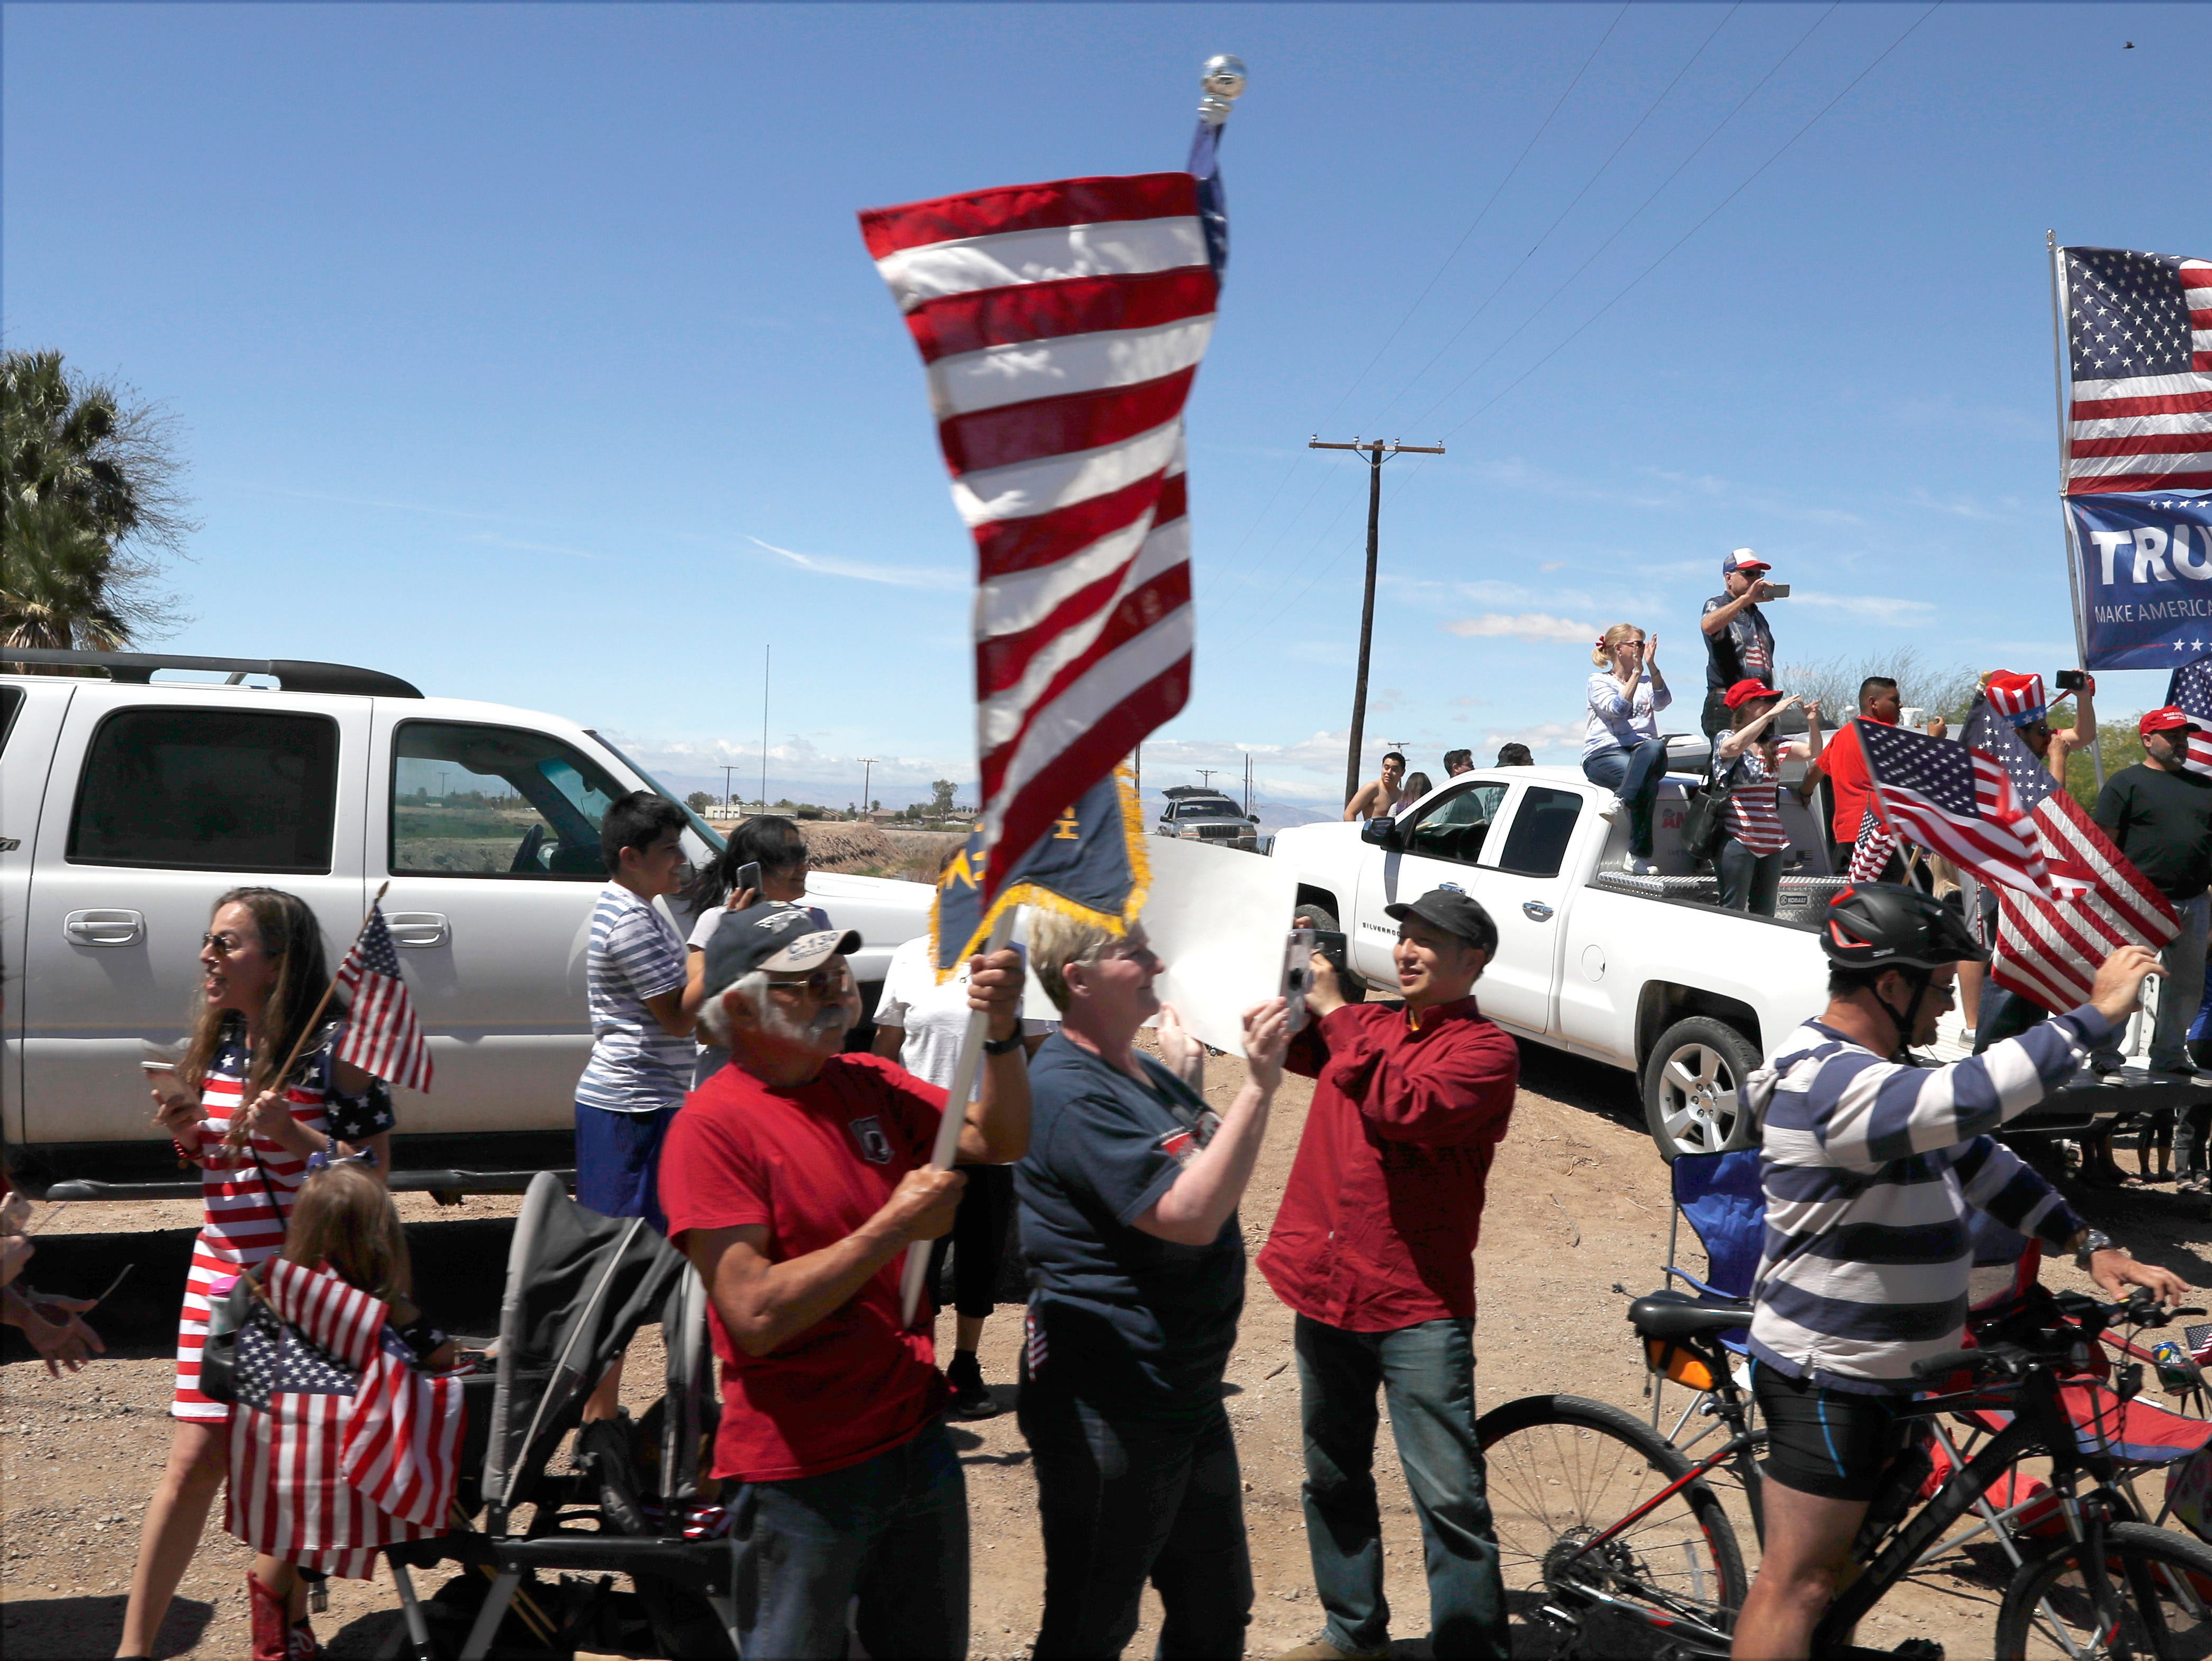 People line the street in El Centro, California, April 5, 2019, as President Donald Trump headed to the border with Mexico to make a renewed push for border security as a central campaign issue for his 2020 re-election.